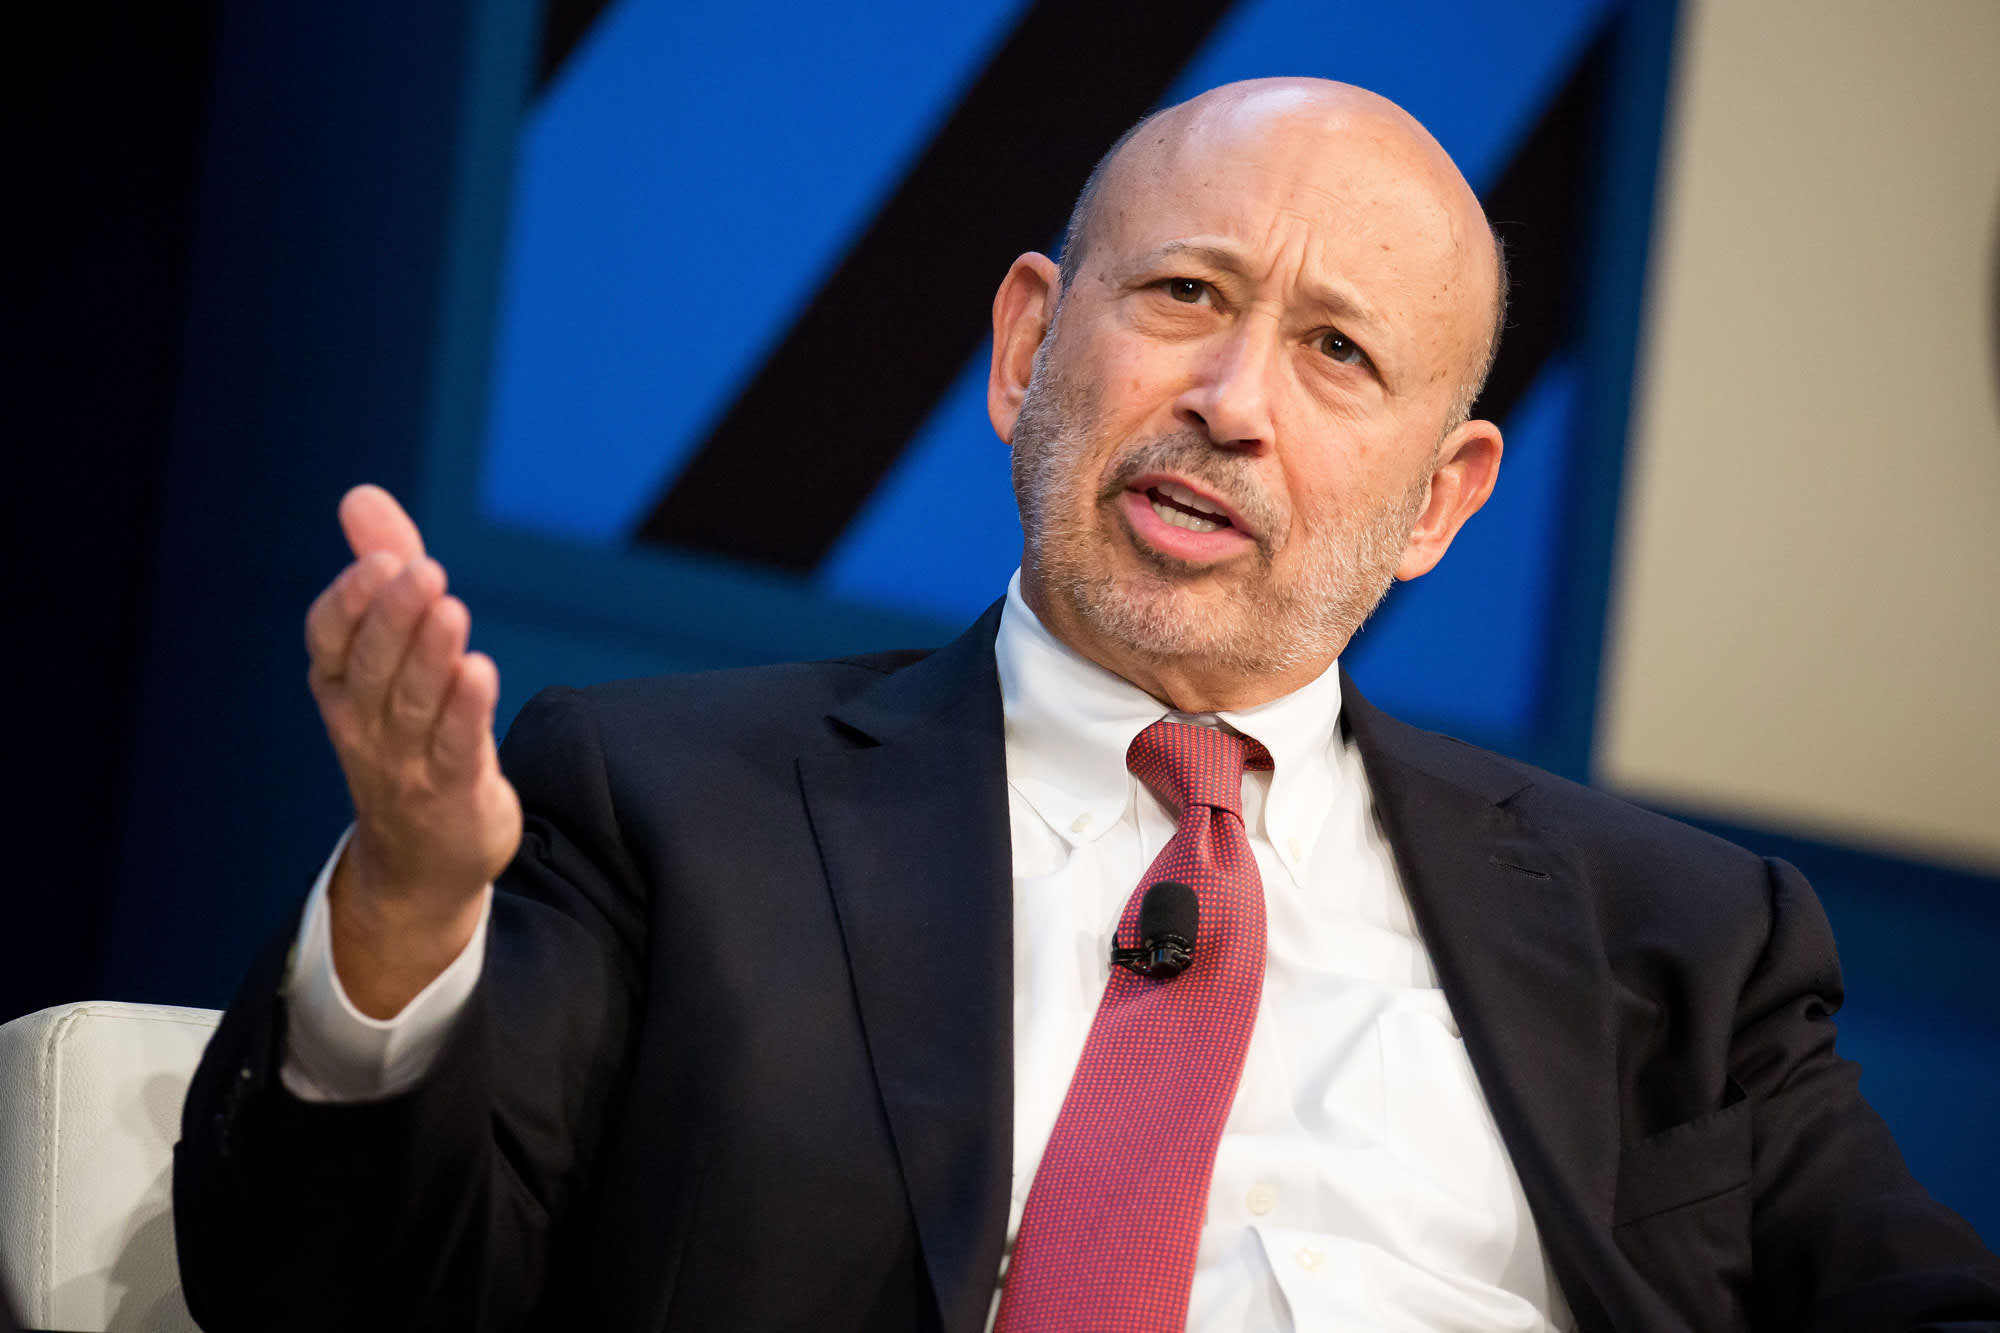 Lloyd Blankfein defends CEO pay on CNBC: 'Do you think television reporters make too much money? I do'